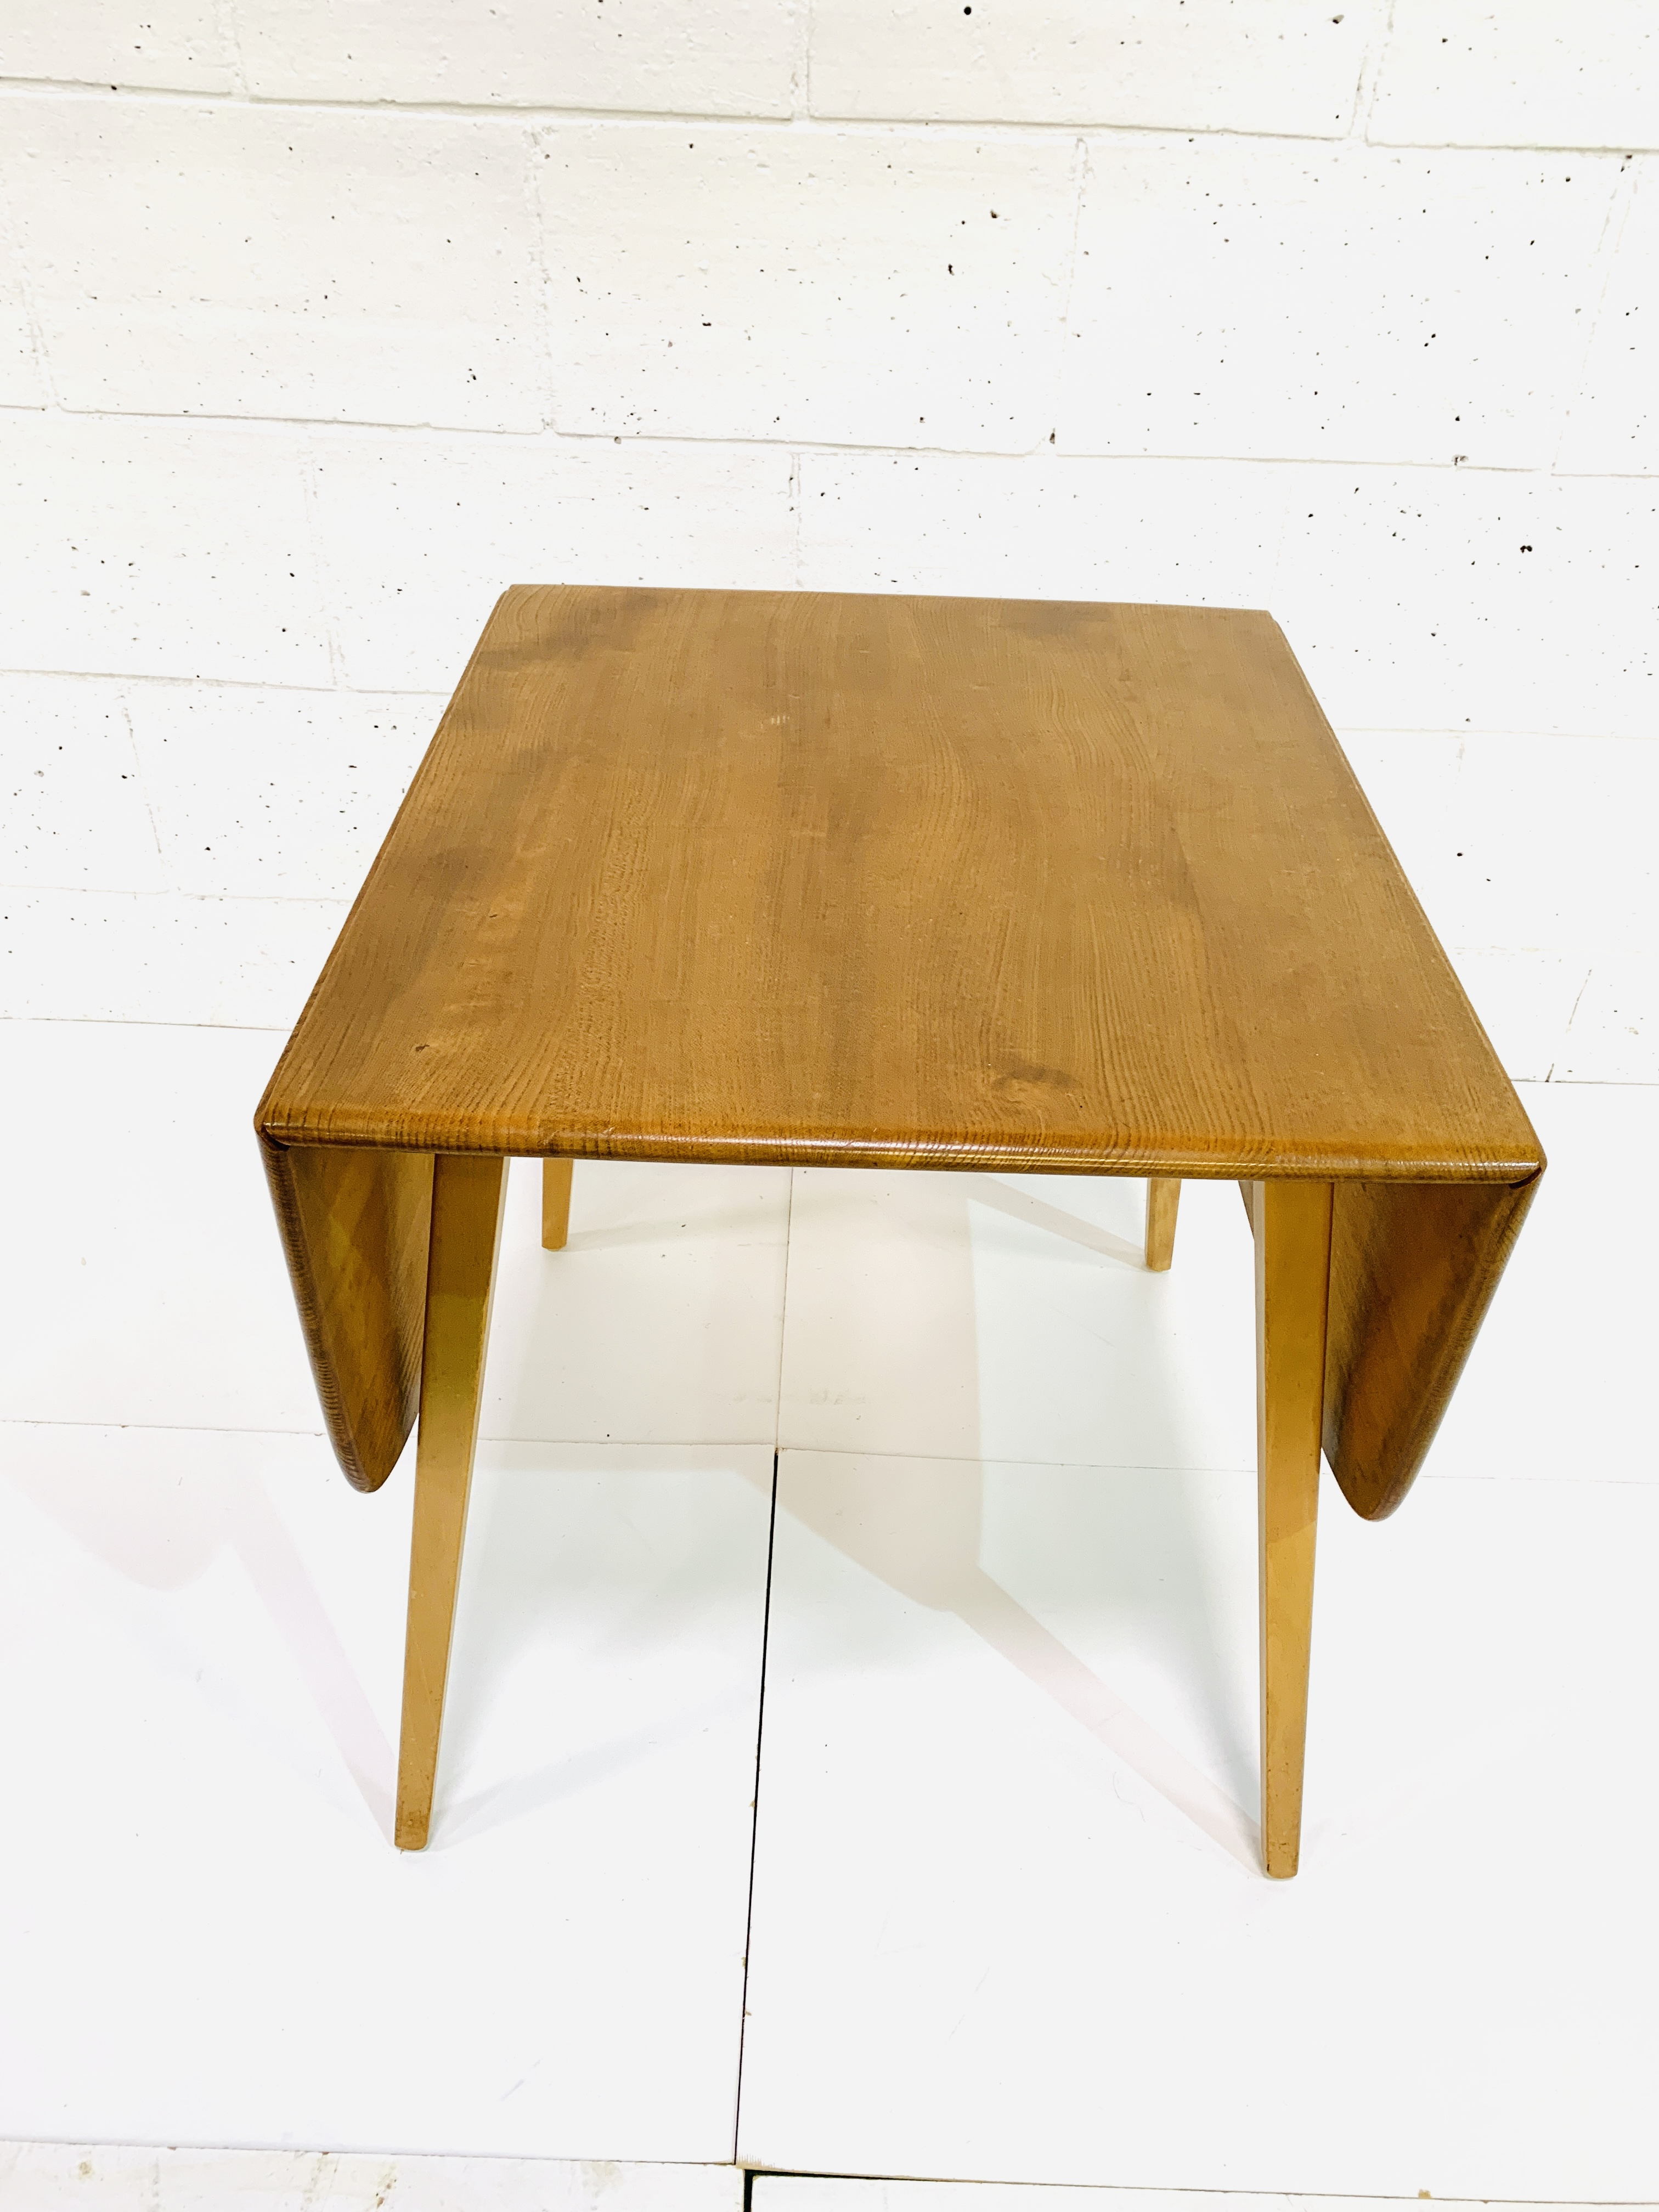 Ercol dropside table - Image 6 of 7